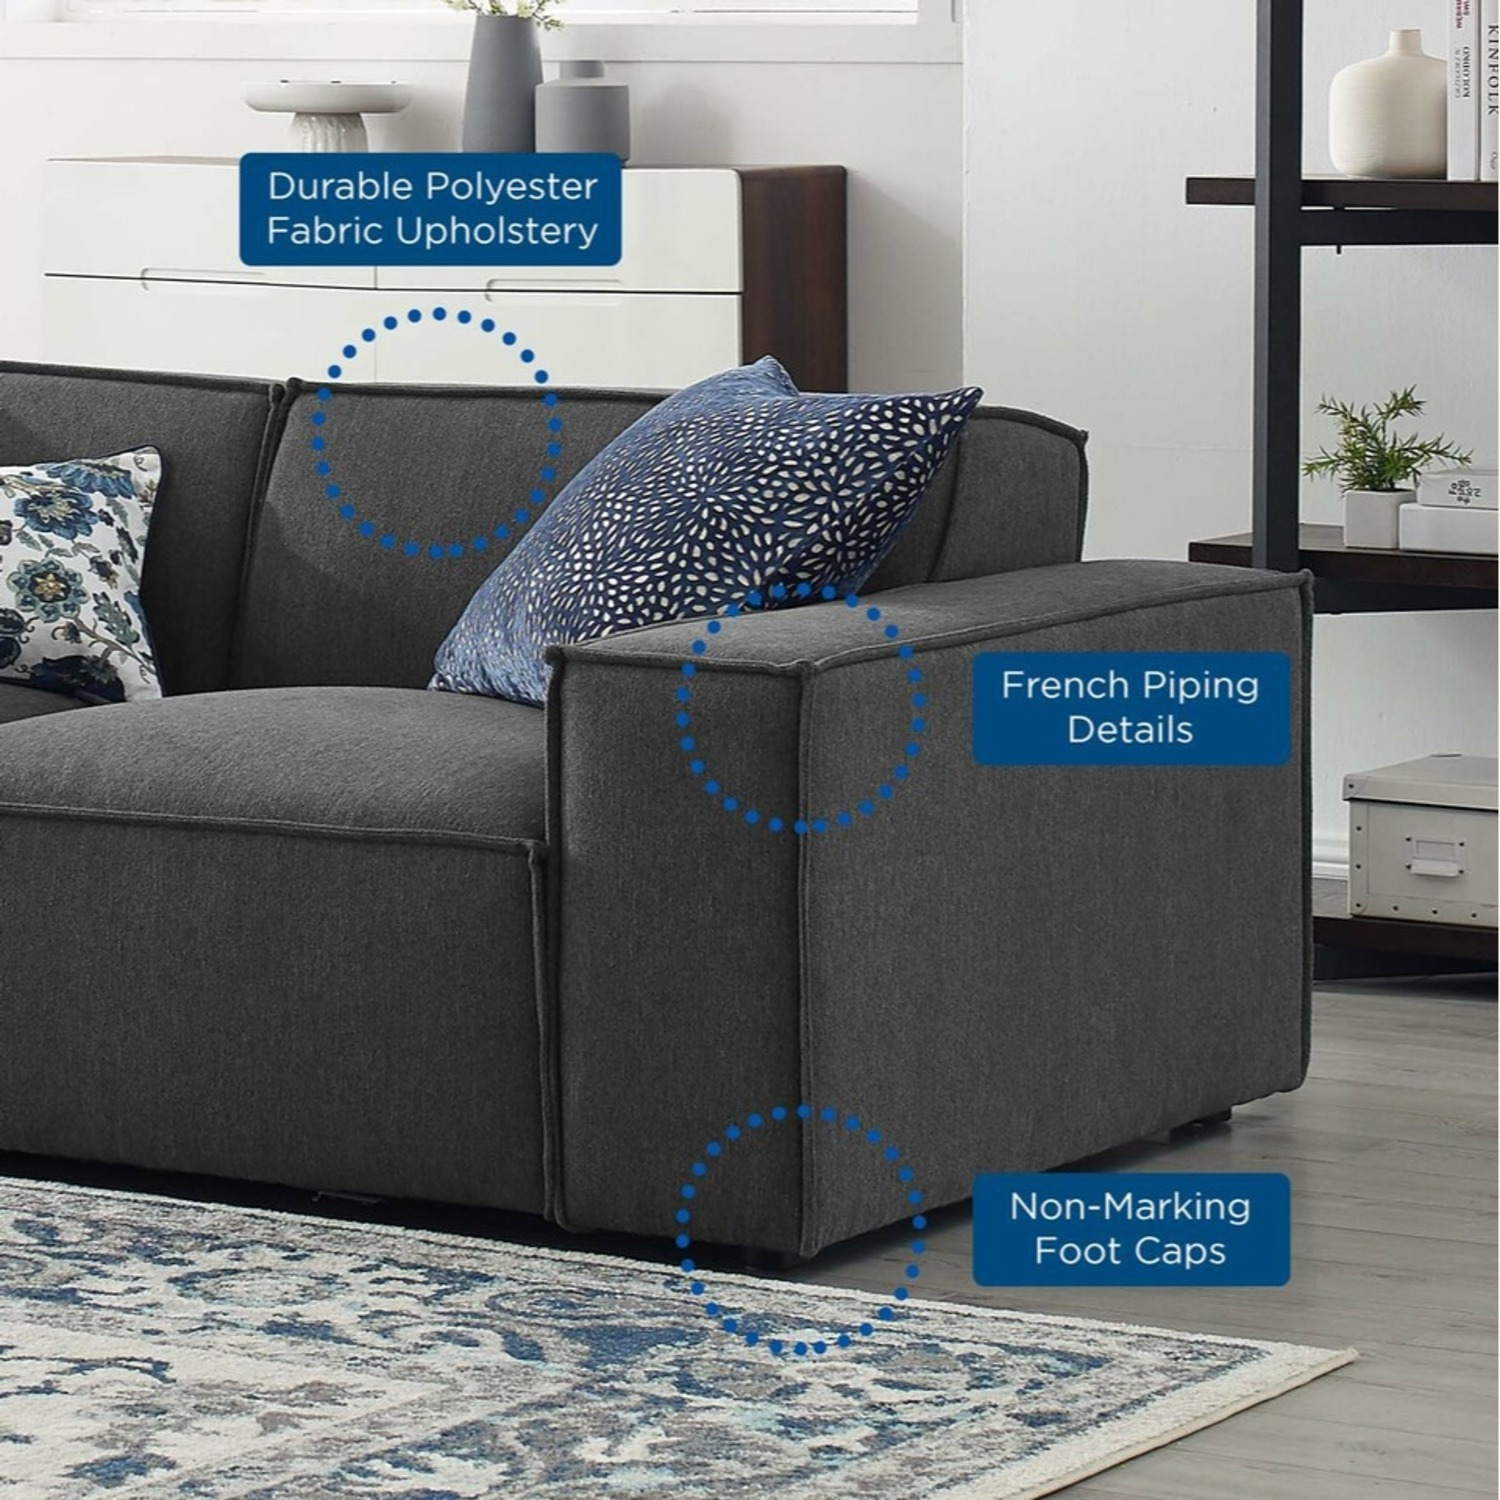 5-Piece Sectional Sofa In CharcoalW/ Piping Detail - image-9